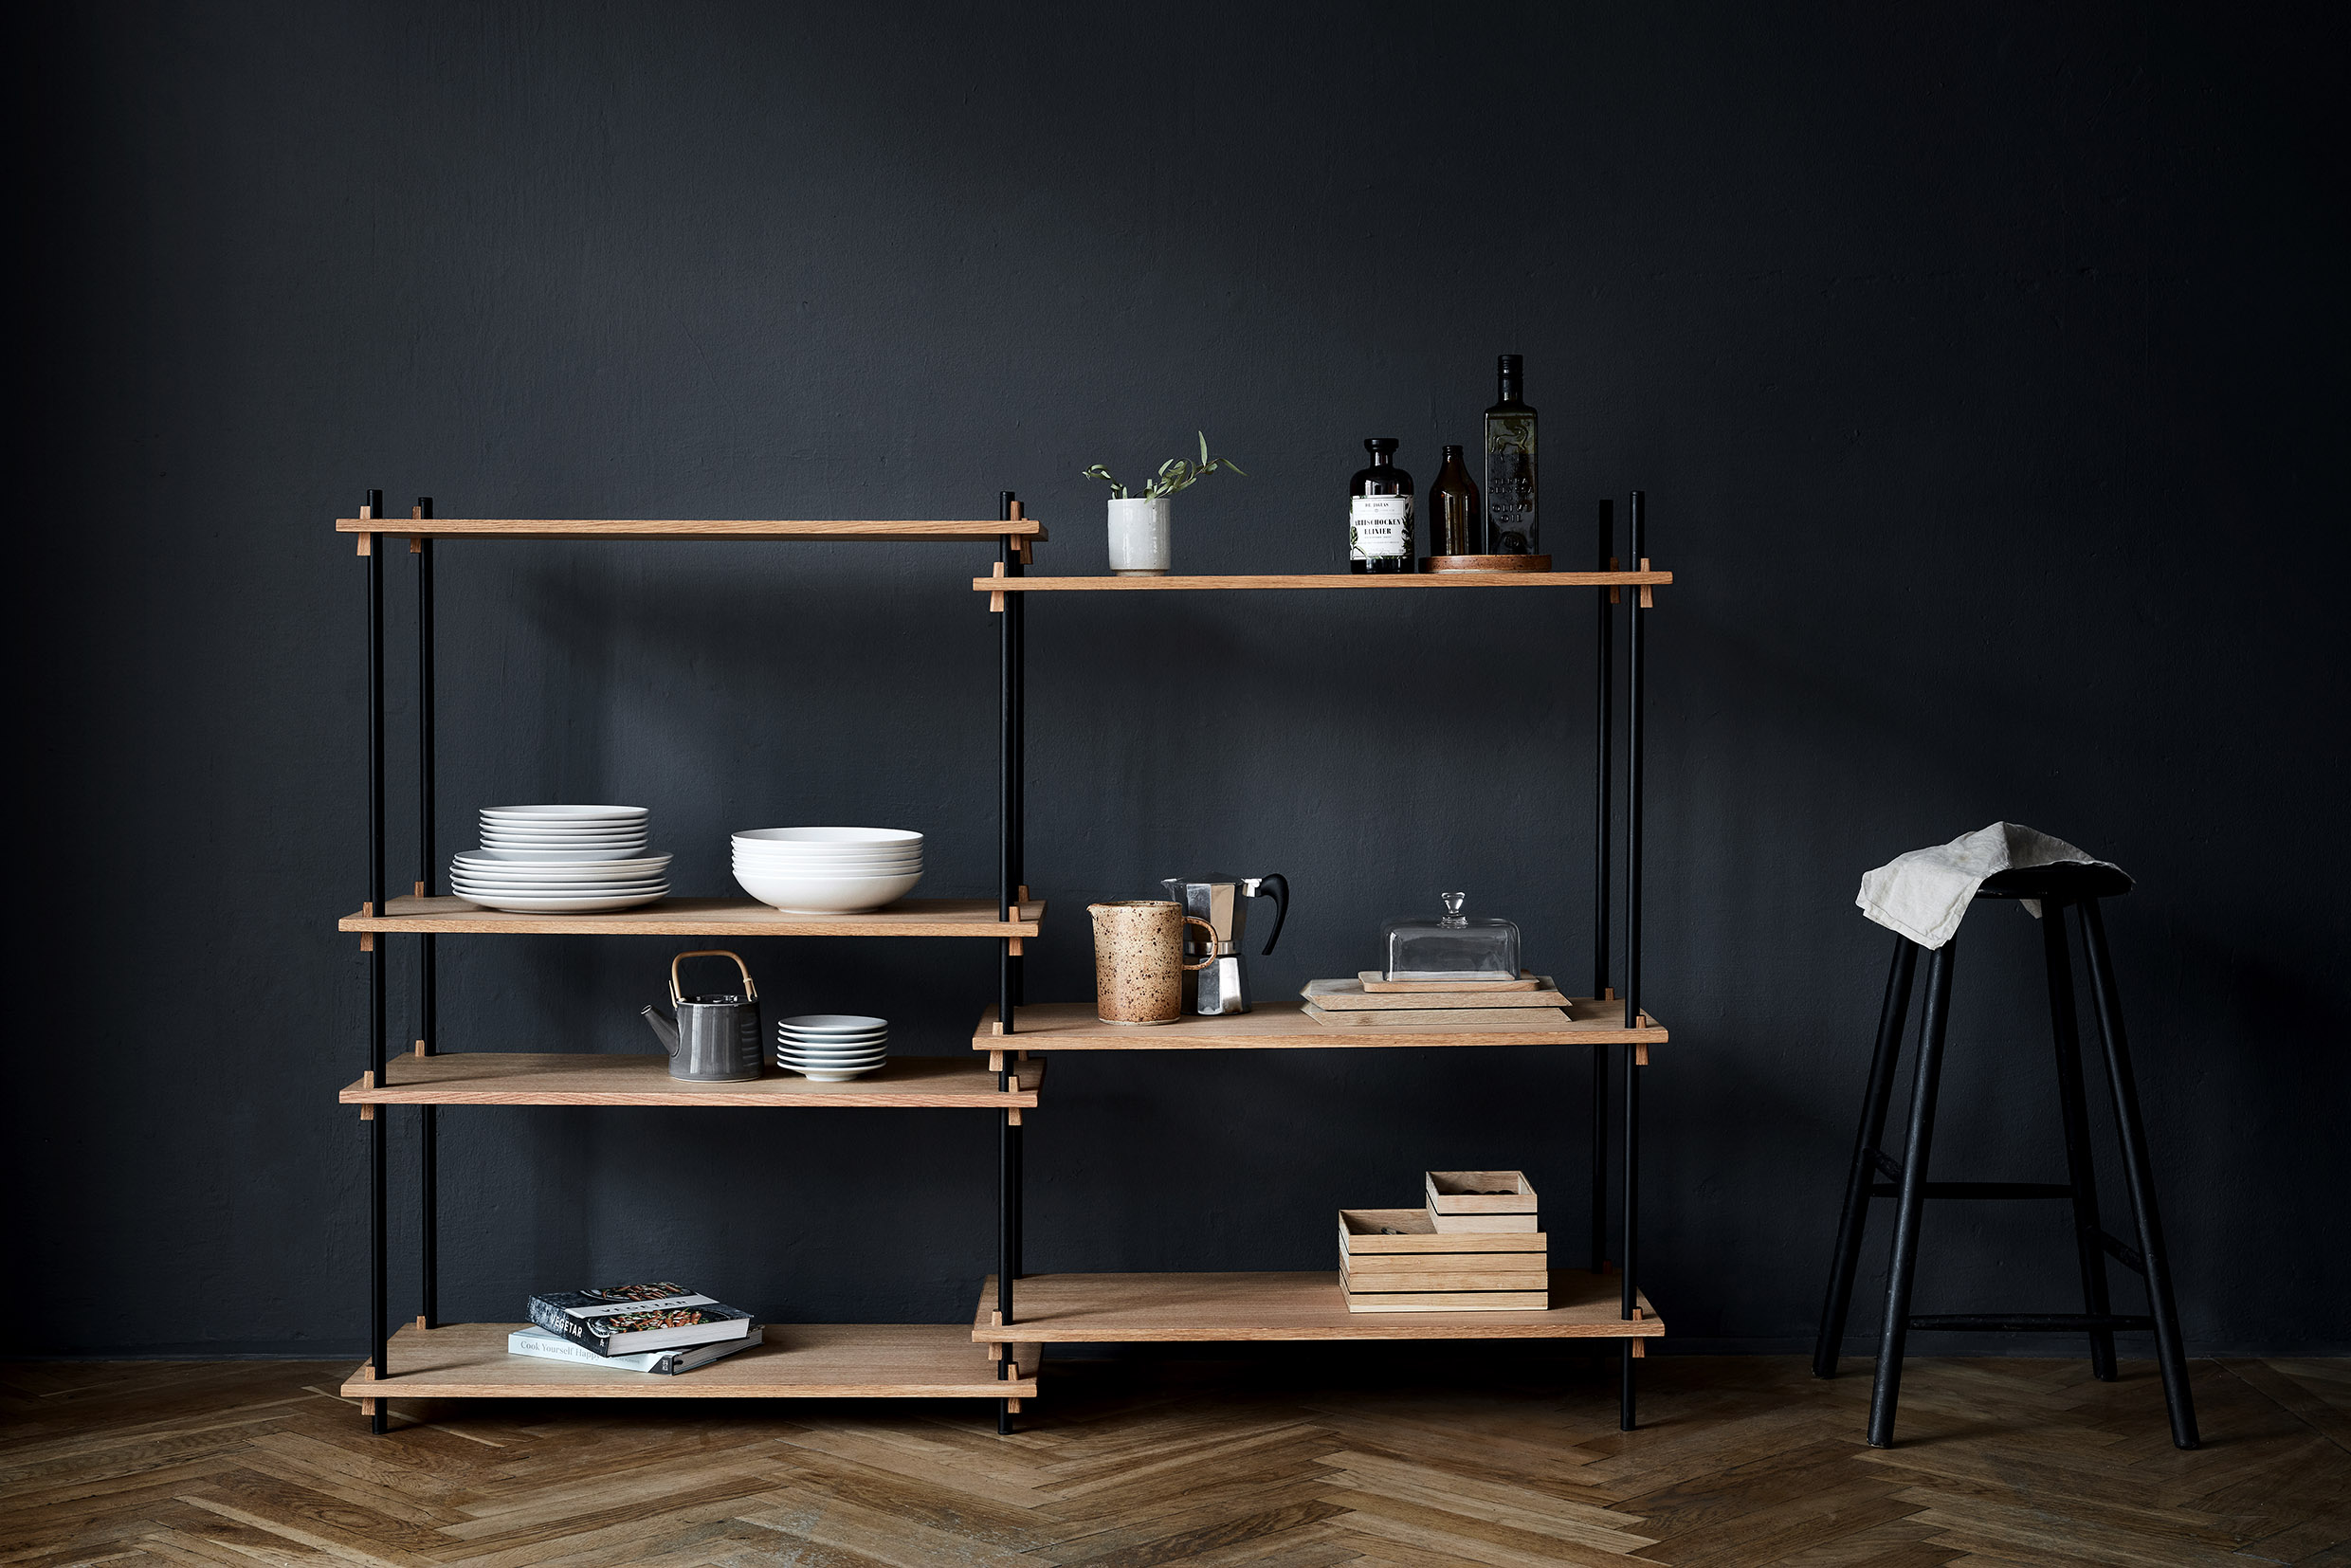 MOEBE_SHELVING-SYSTEM_IN-CONTEXT_LOW-RES_10.jpg